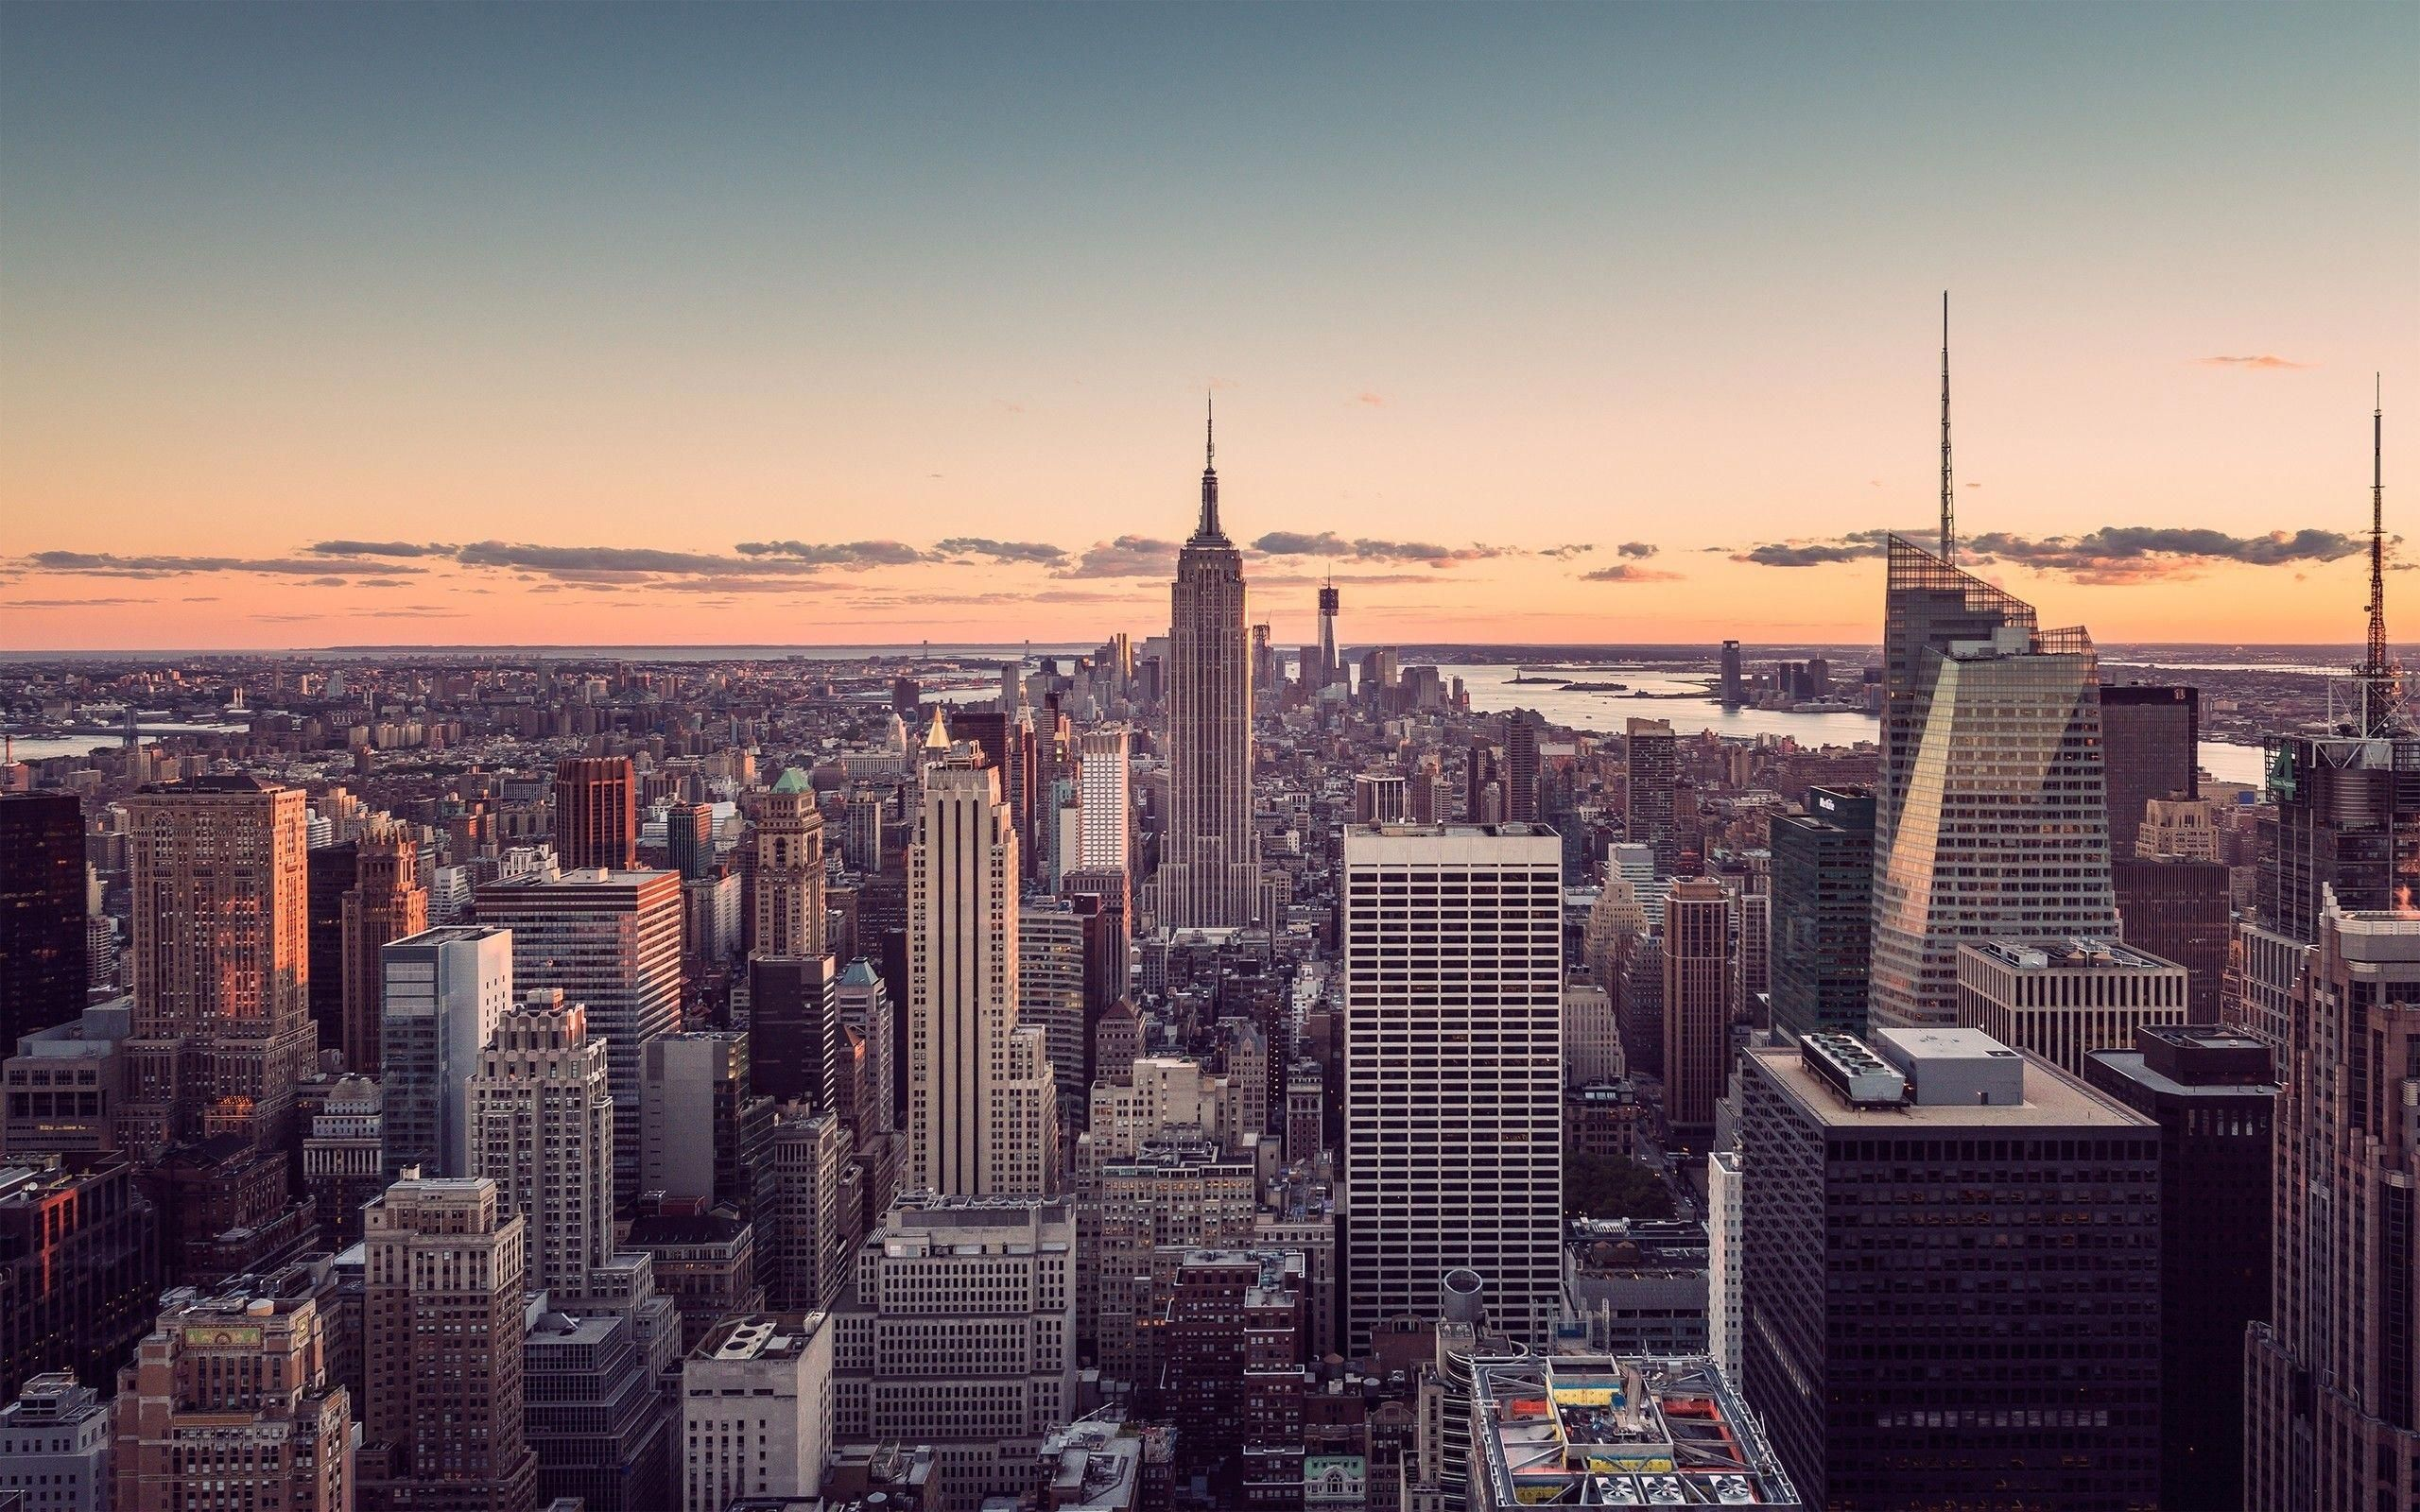 2560x1600 Download New York Wallpaper For Phone Gallery Free Wallpapers Pinterest Wallpaper And Hd Wallpap New York Wallpaper Sunset City York Wallpaper